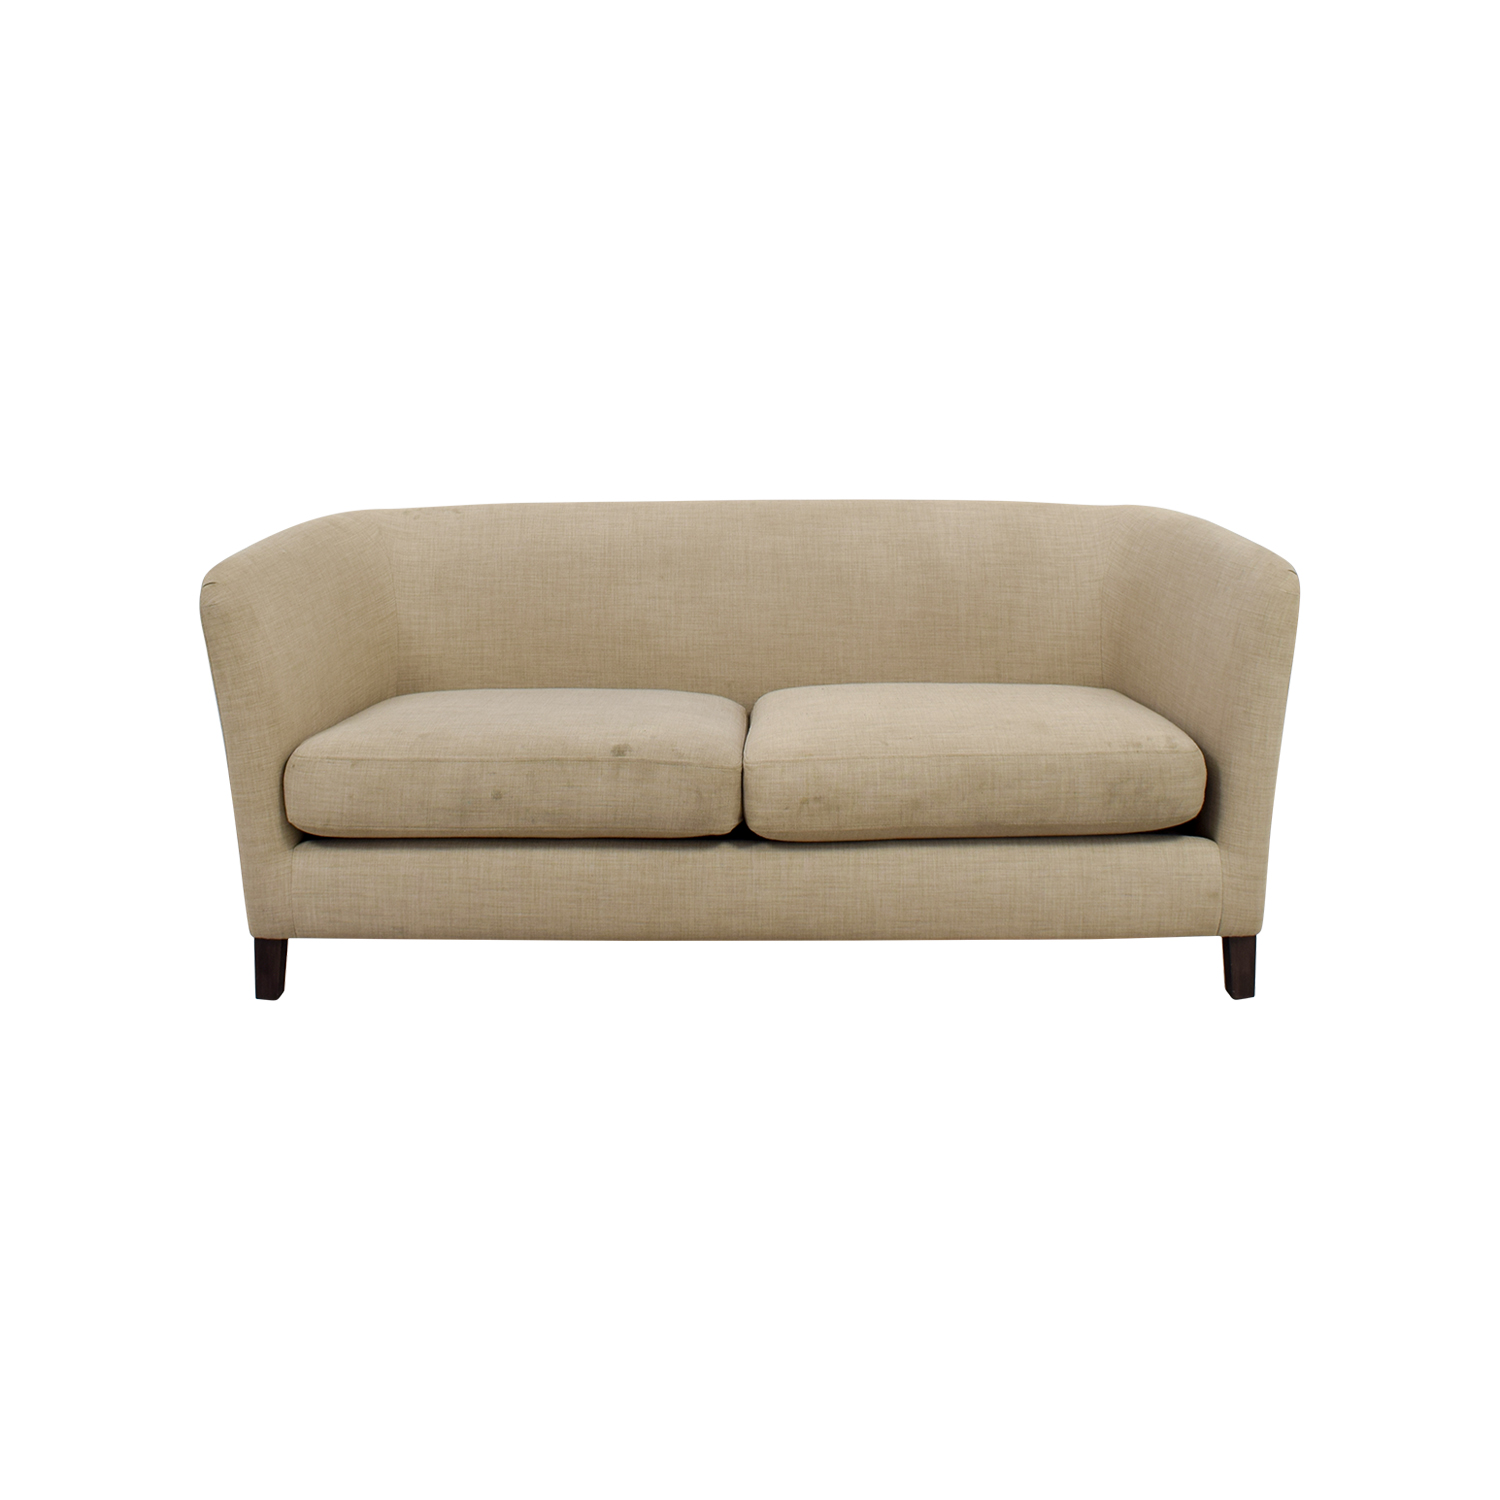 Pottery Barn Pottery Barn Two-Seater Sofa